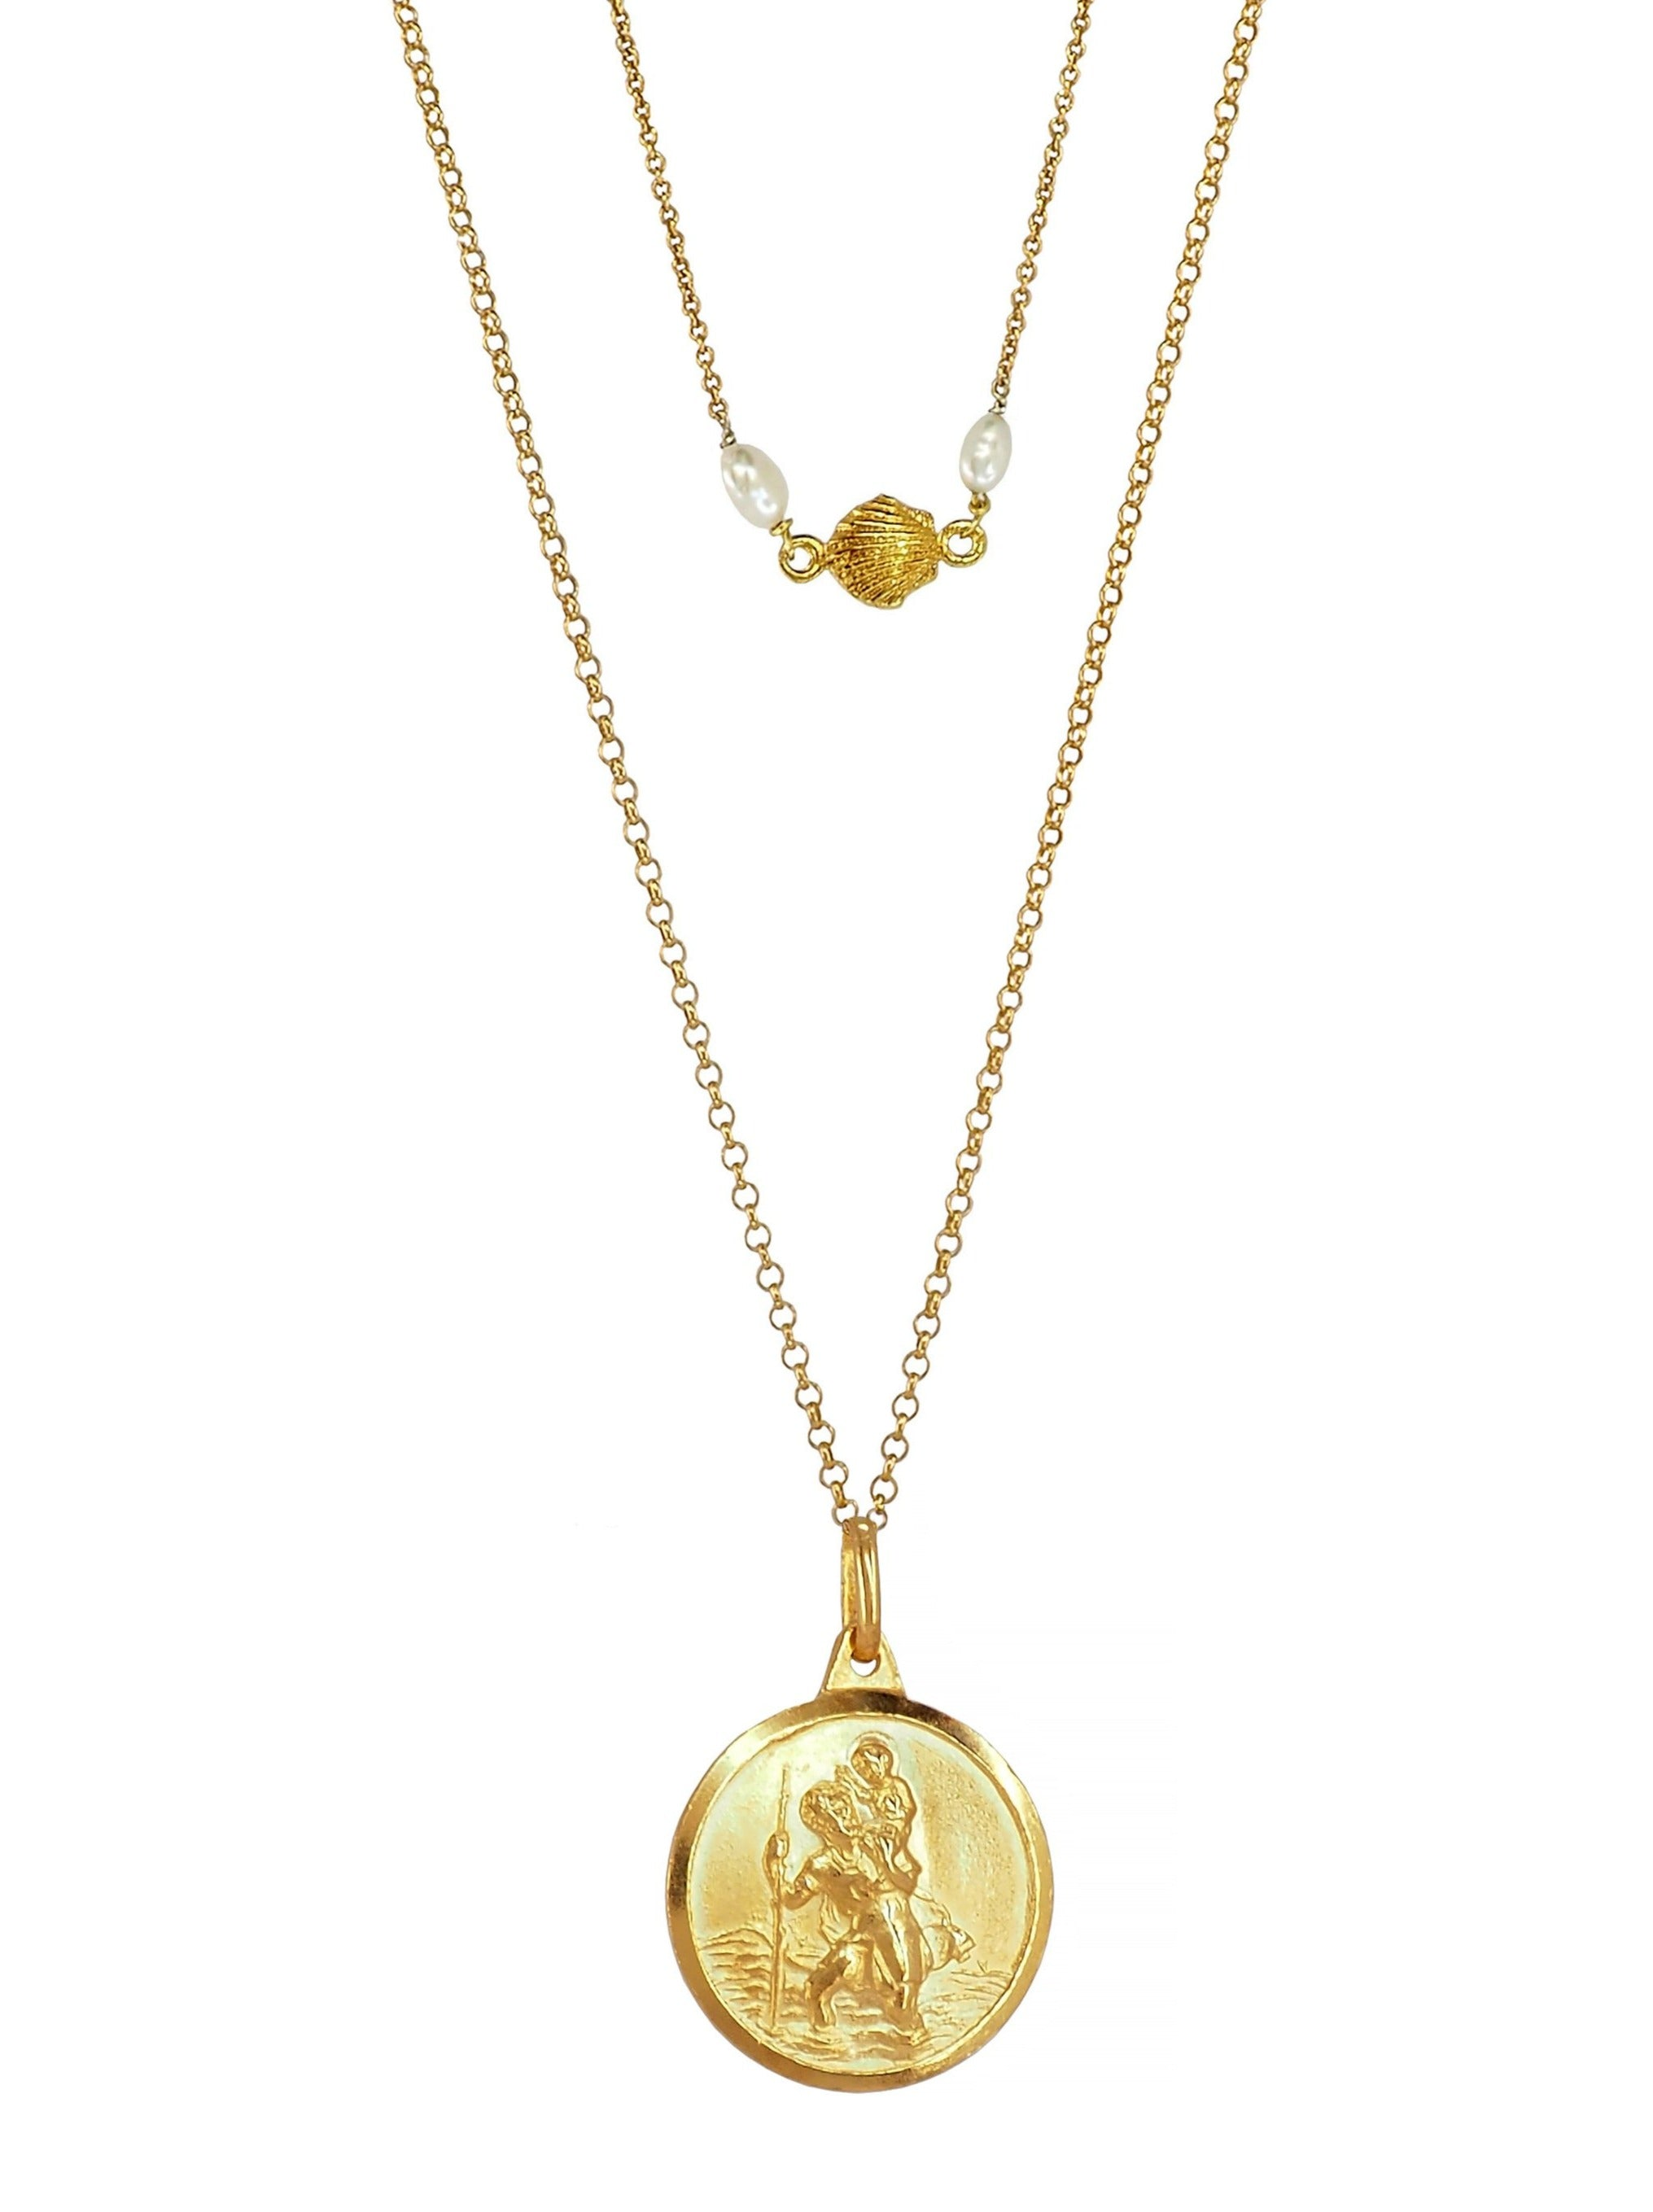 st. Christopher Gold plated sterling silver necklace san Cristobal freshwater pearls